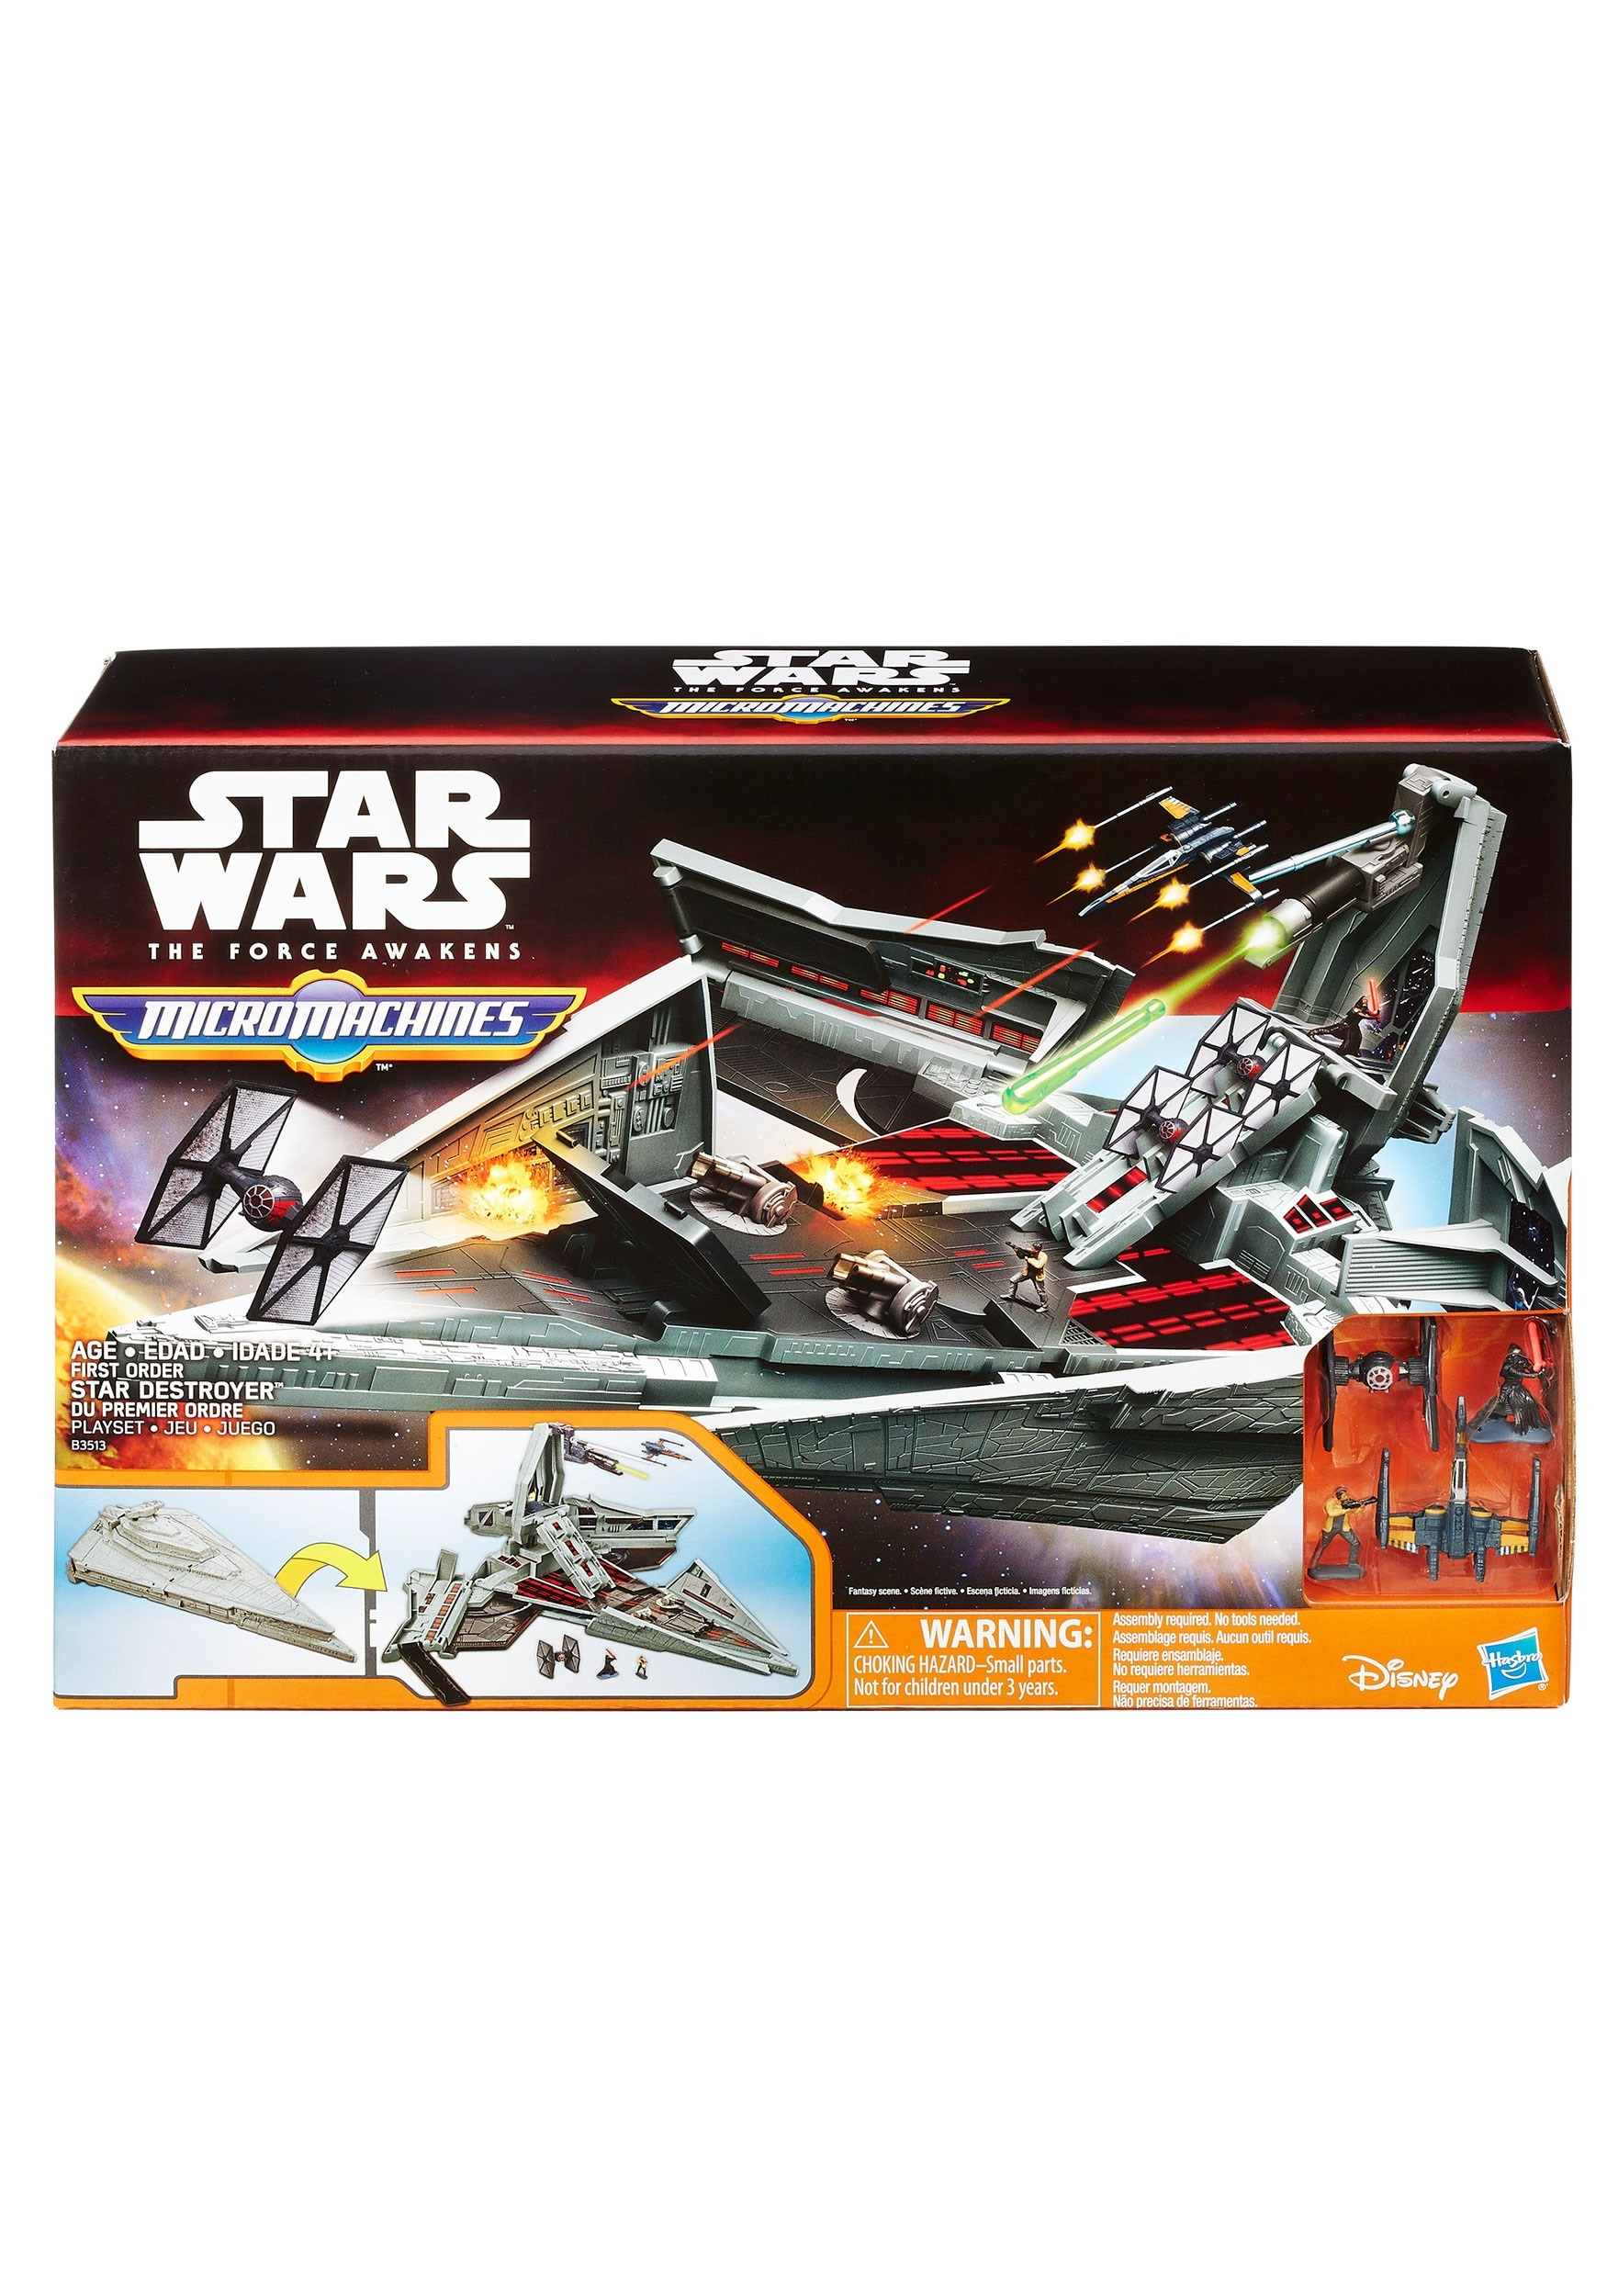 Star Wars Episode 7 First Order Star Destroyer EEDHSB3513